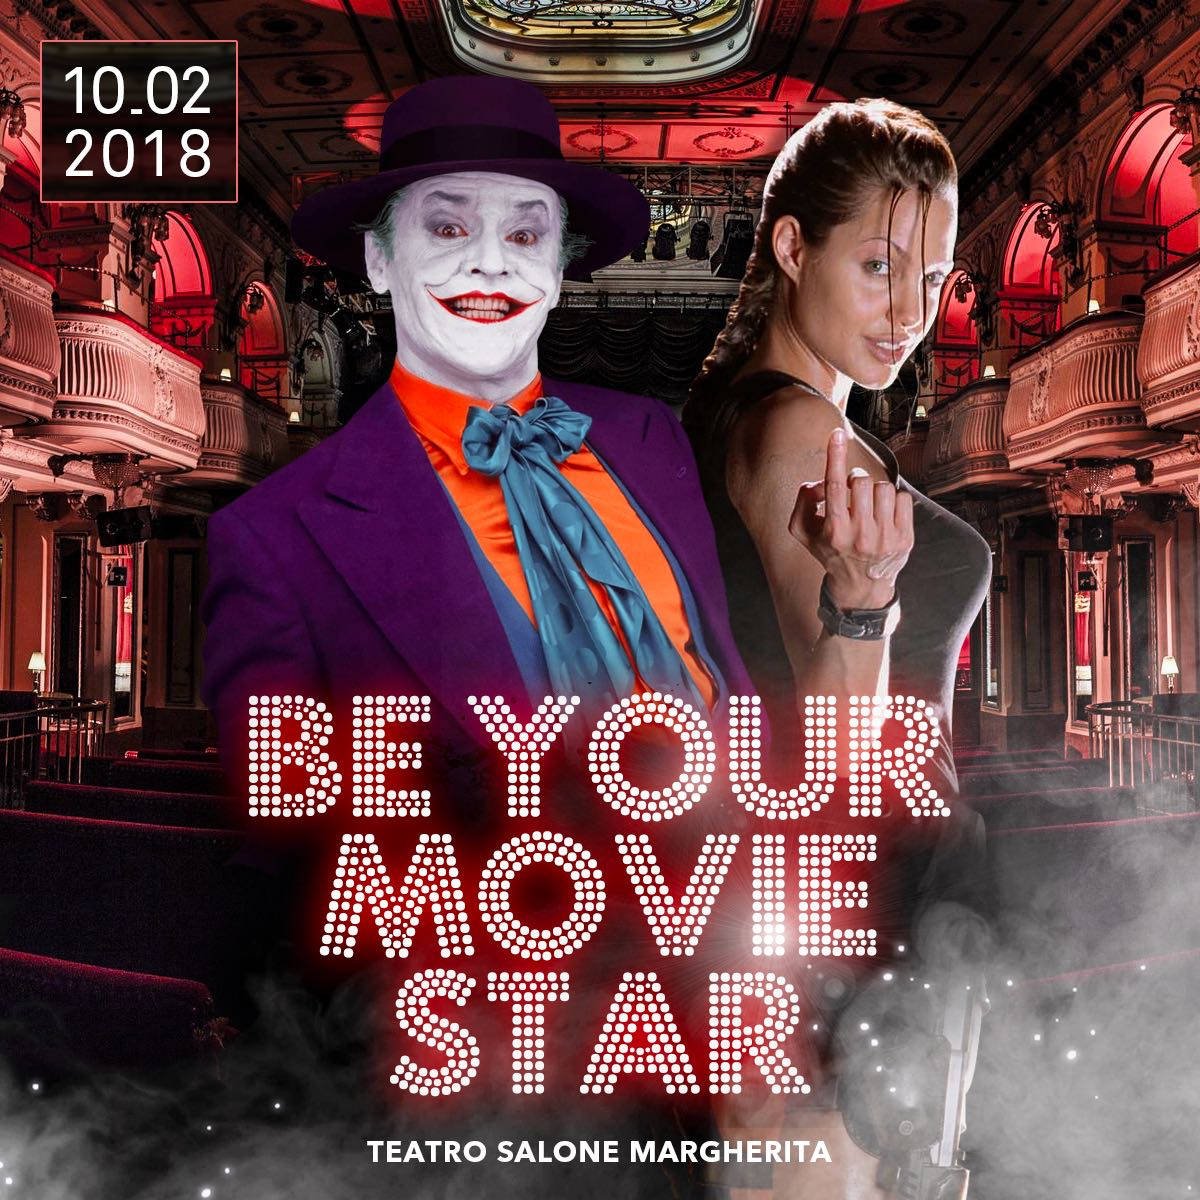 La Festa di Carnevale Be Your Movie Star